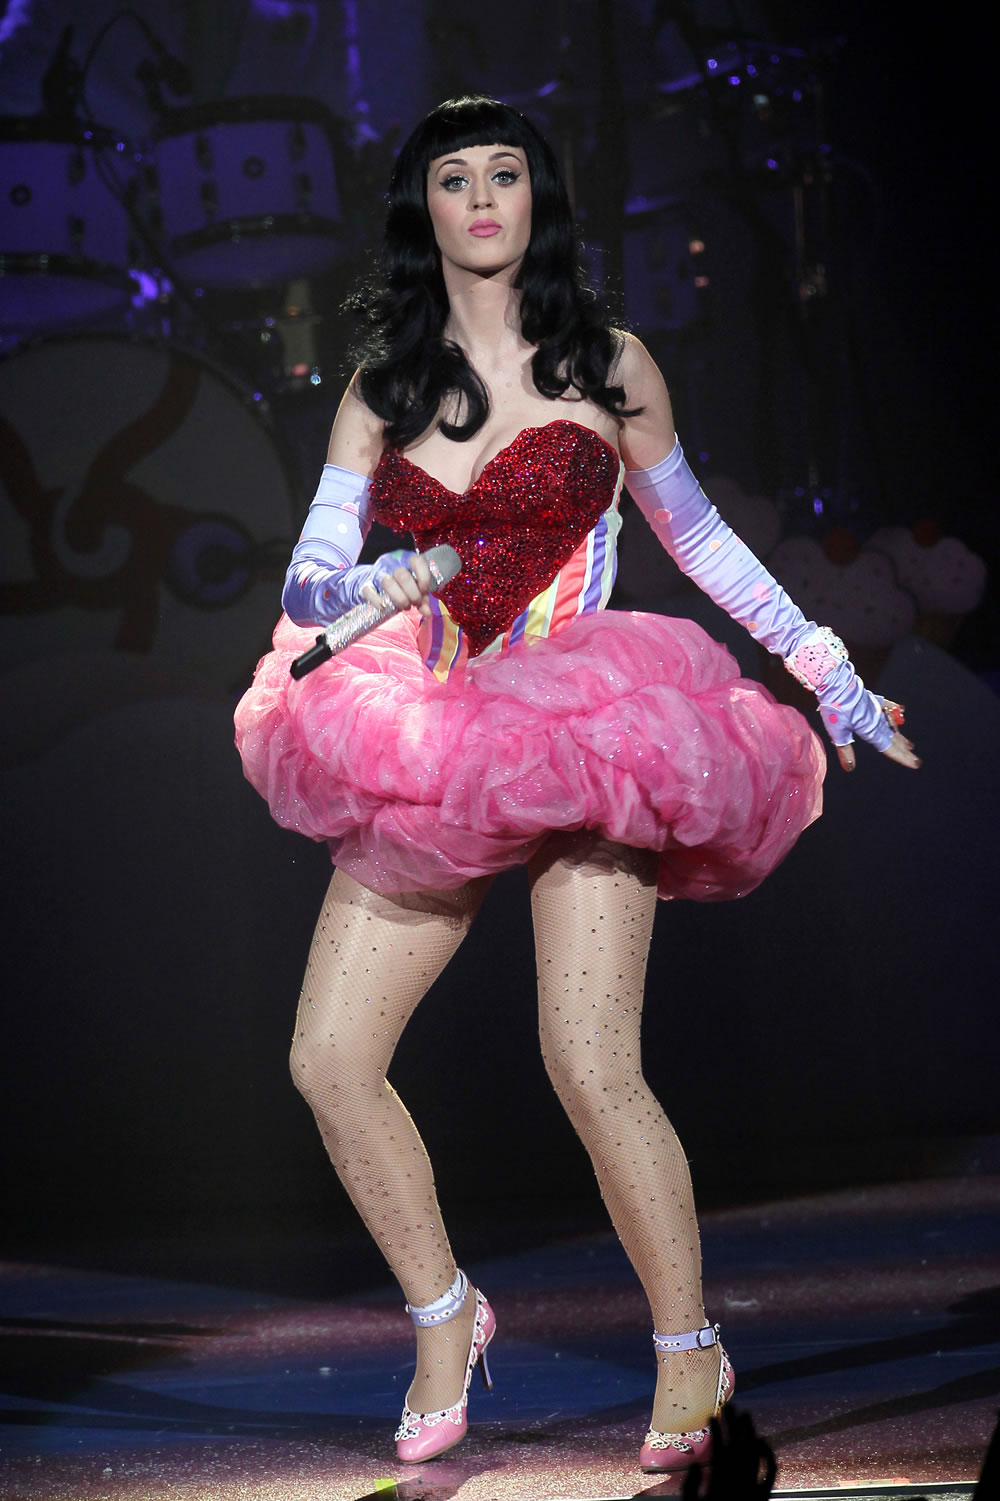 fp_6941066_ang_perrykaty_concert_33_40